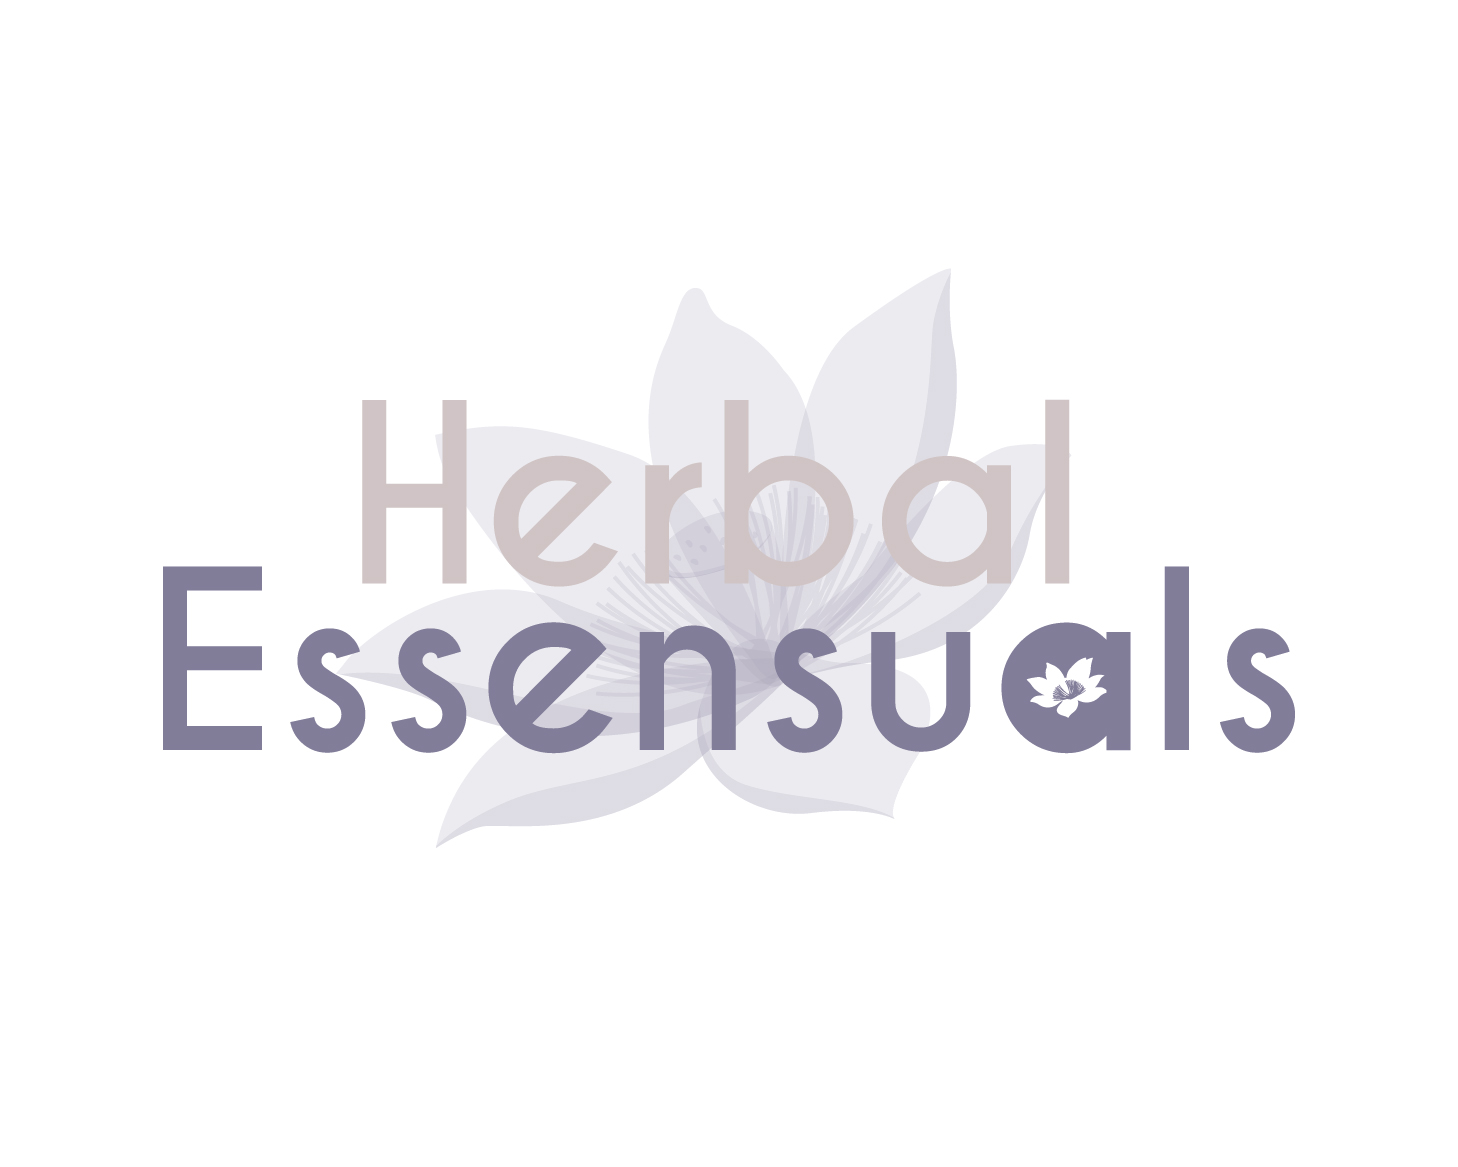 Logo Design by VENTSISLAV KOVACHEV - Entry No. 12 in the Logo Design Contest Captivating Logo Design for Herbal Essensuals.